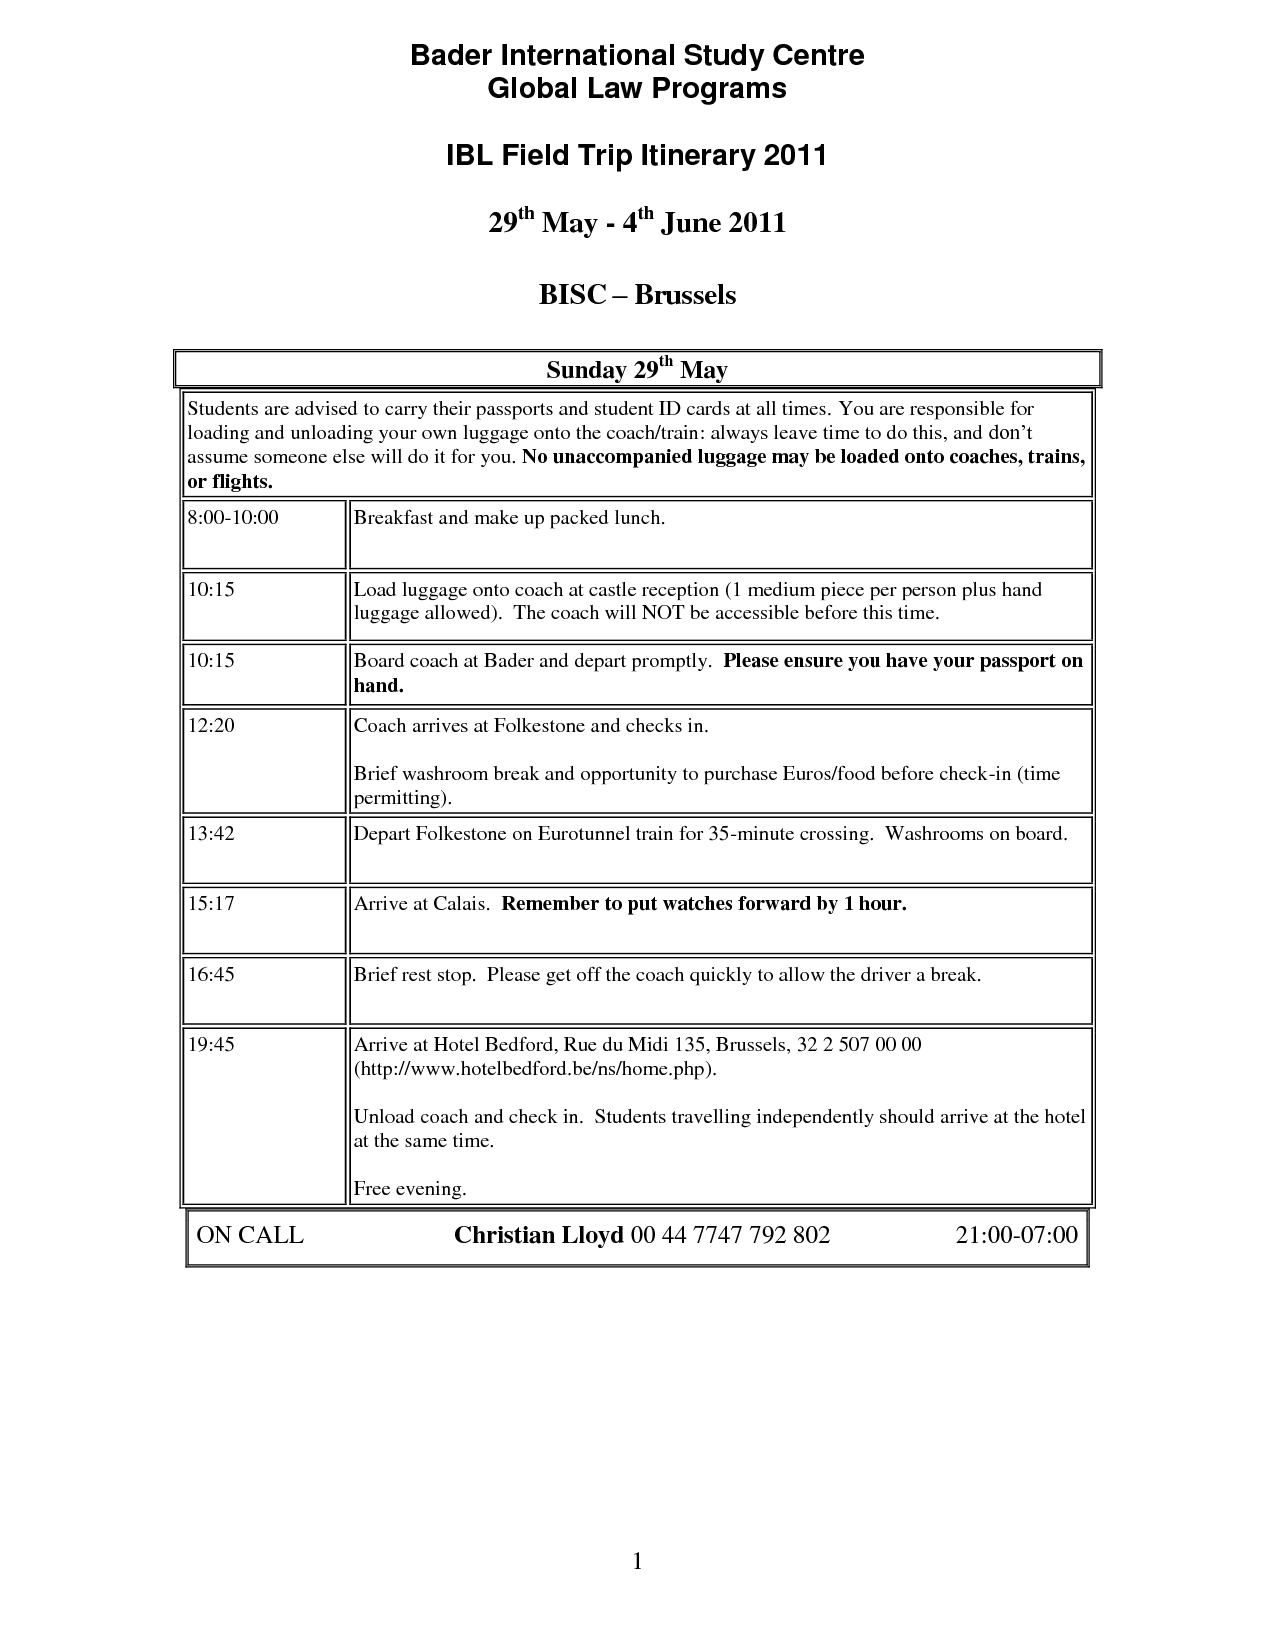 Printable Travel Itinerary Template